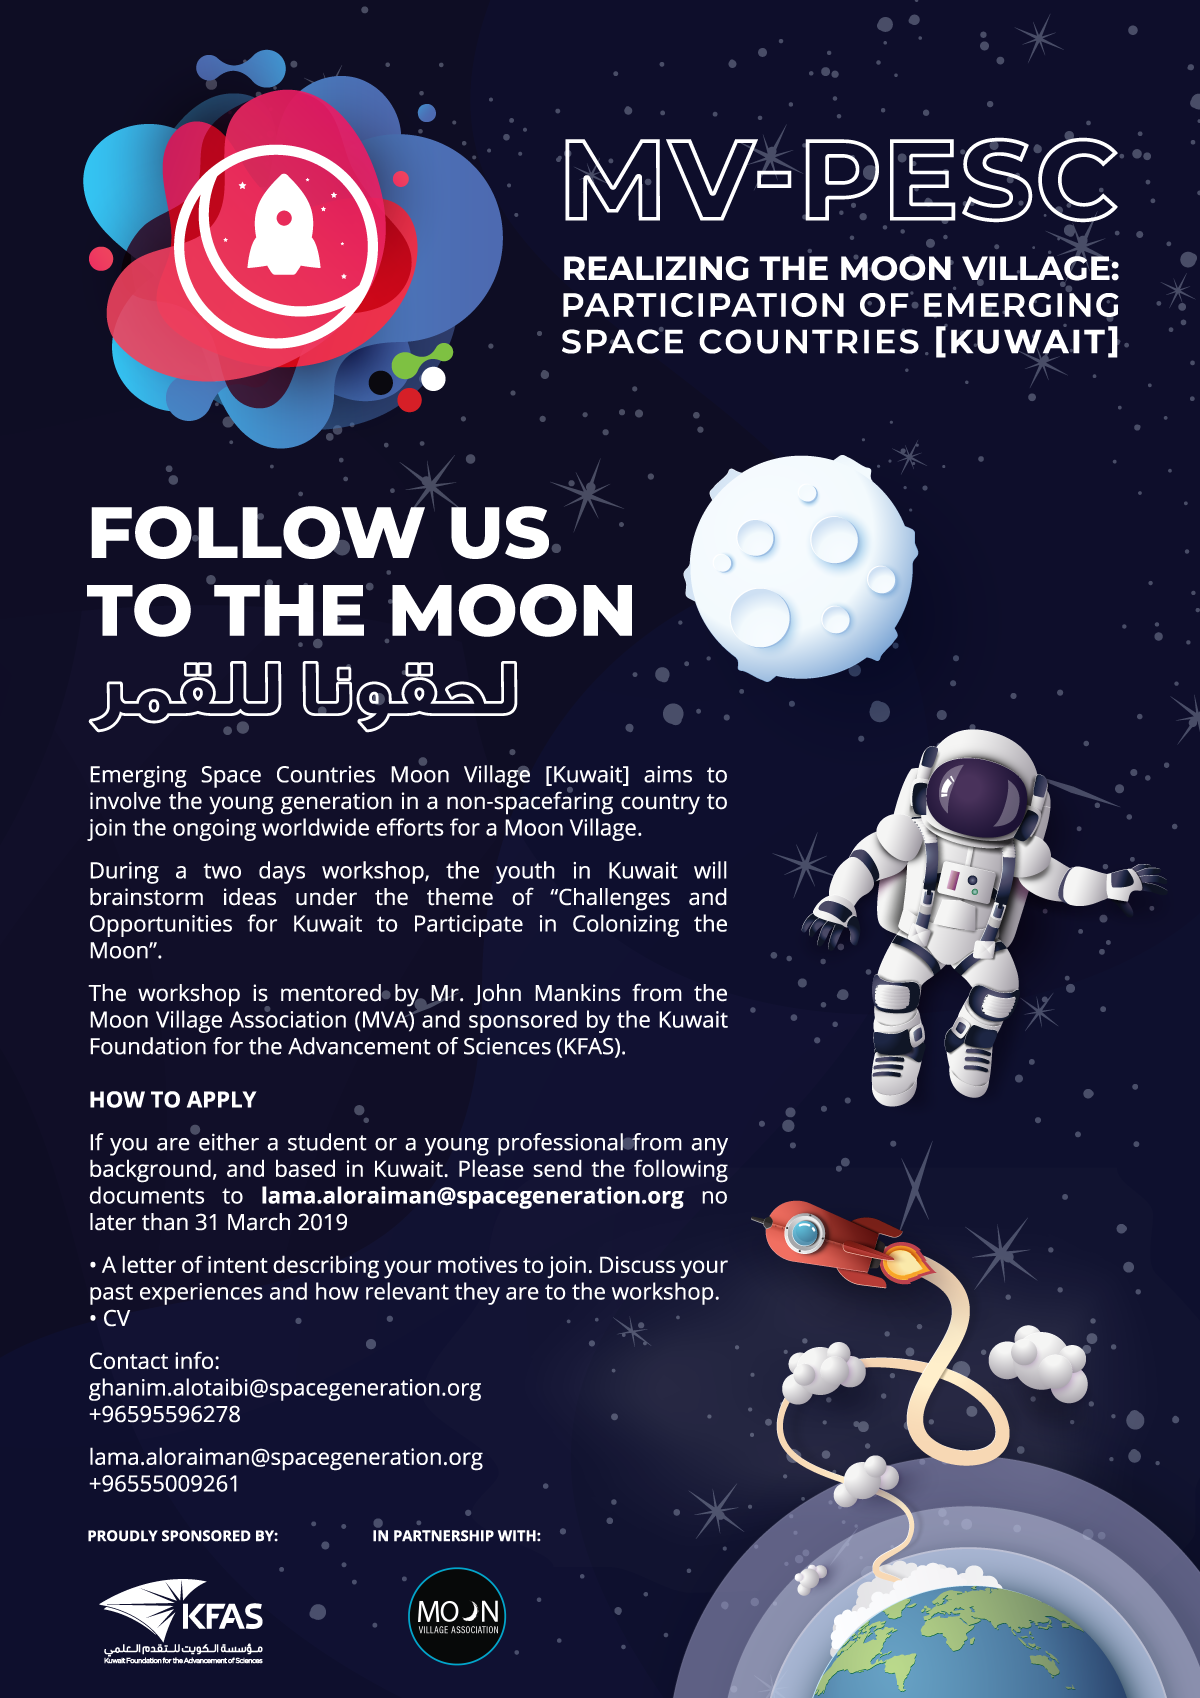 Realizing the Moon Village: Participation of Emerging Space